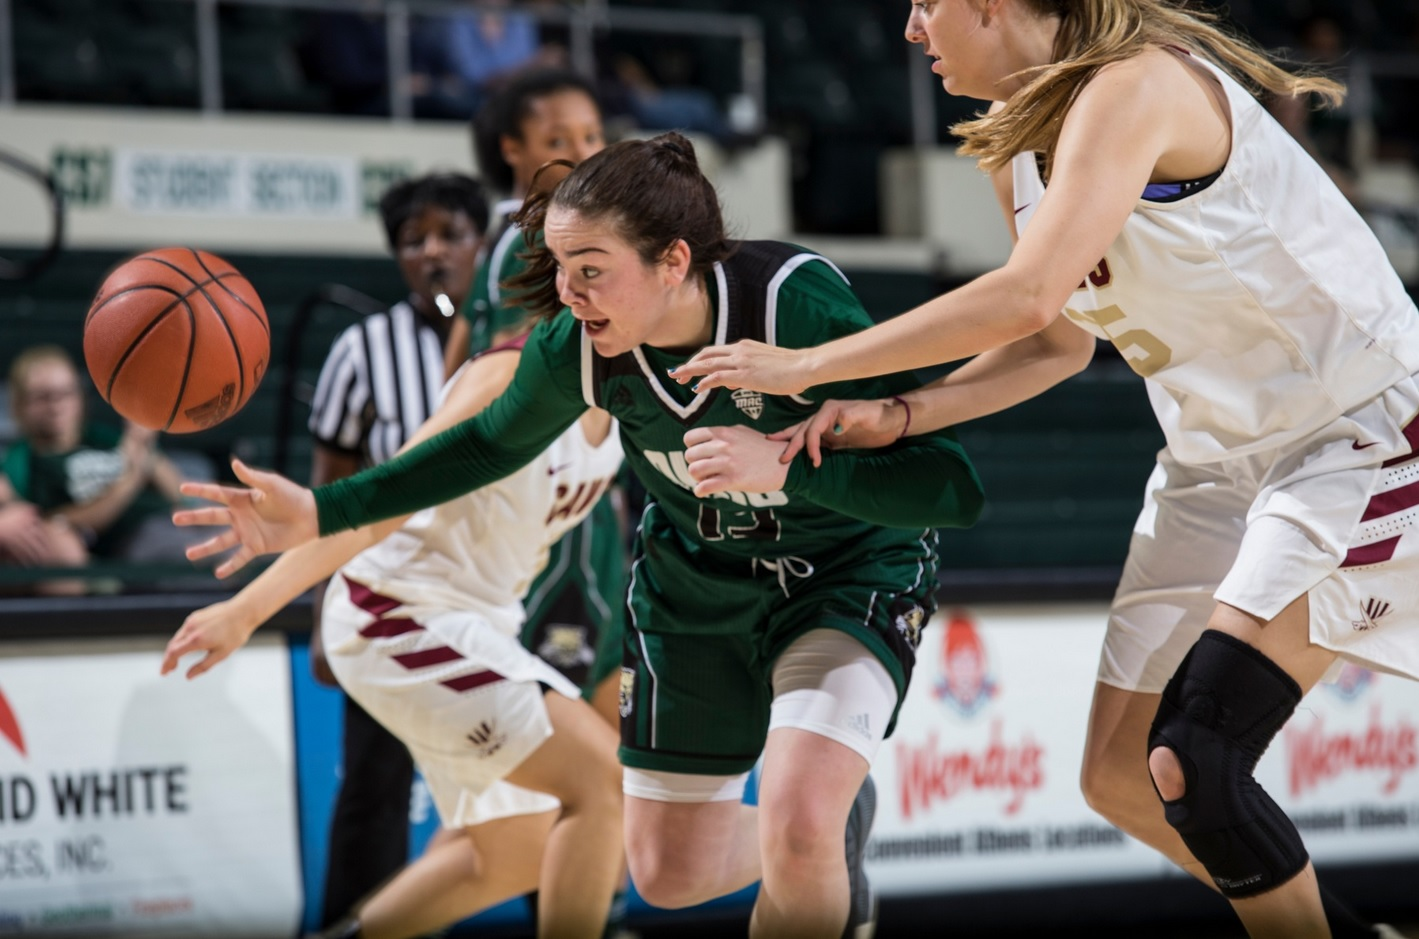 Walsh Upsets Ohio 82-66 In Exhibition Play